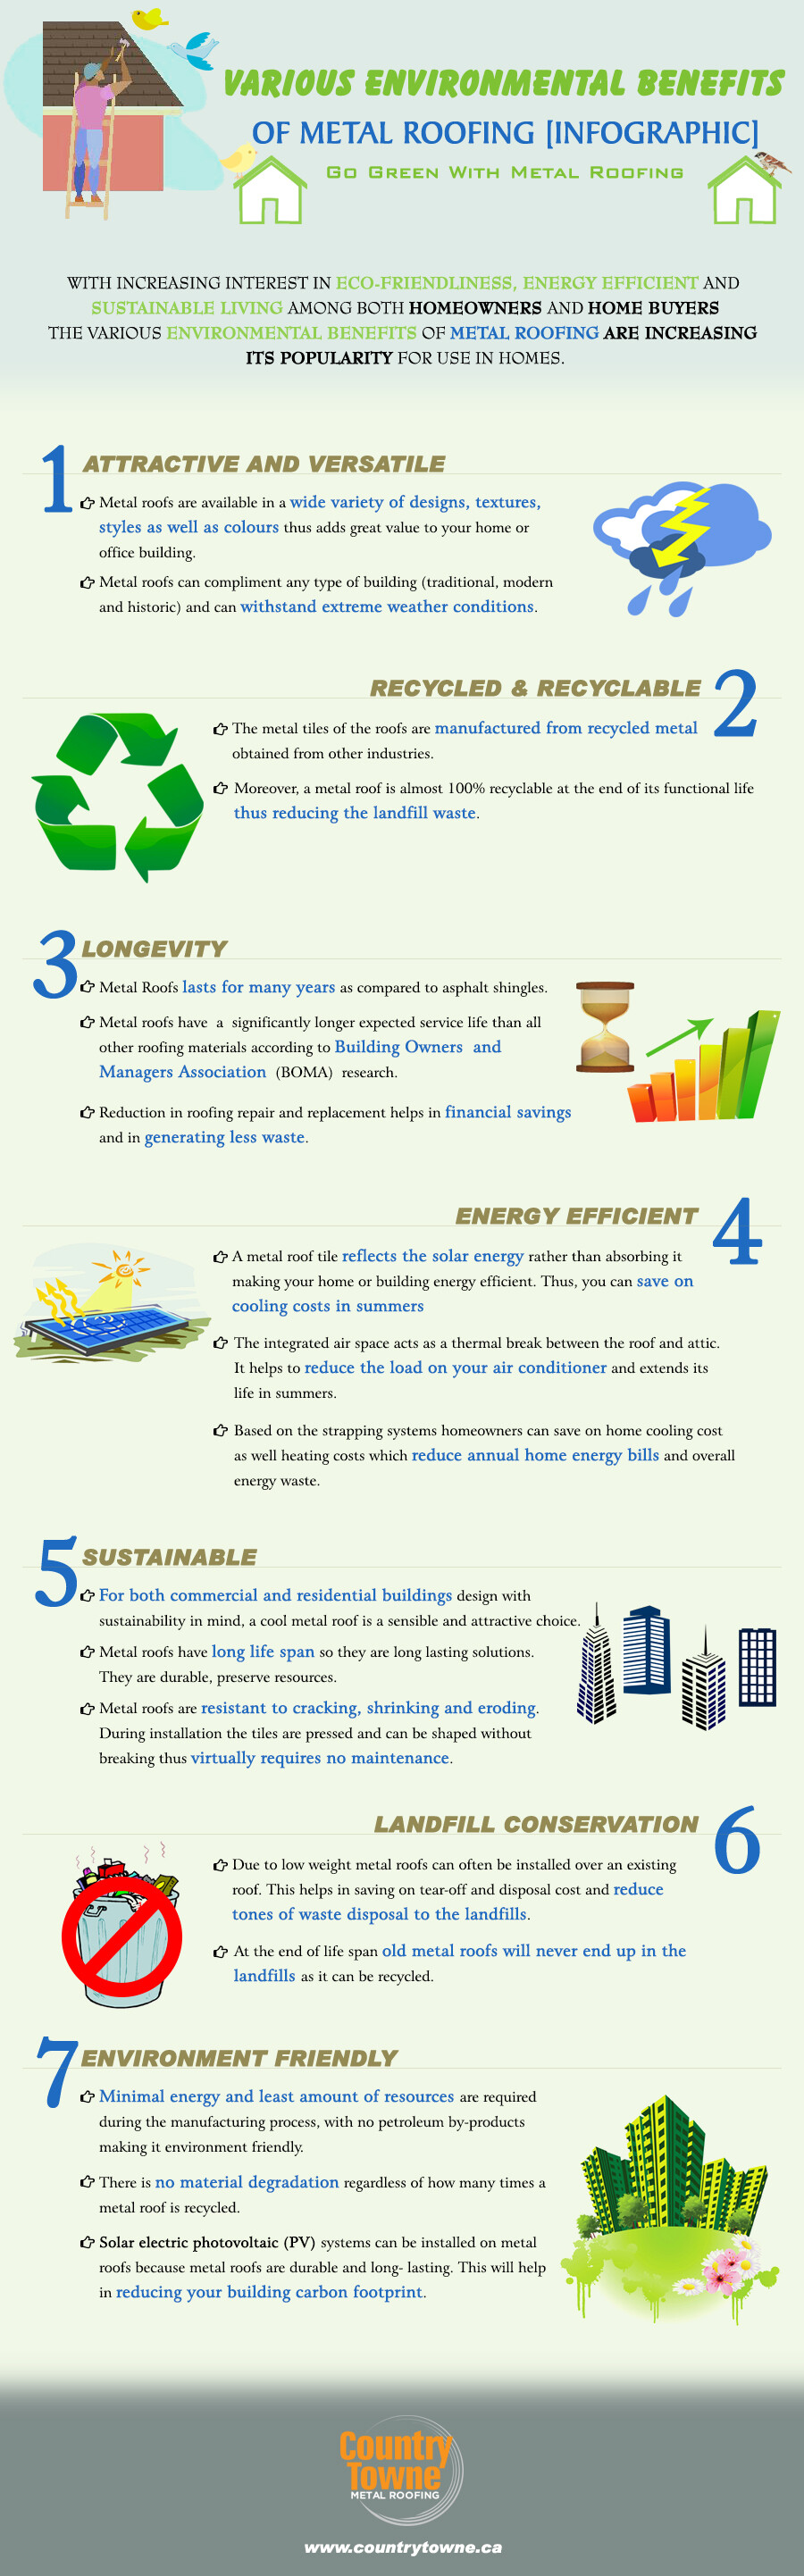 Environmental Benefits of Metal Roofing 3